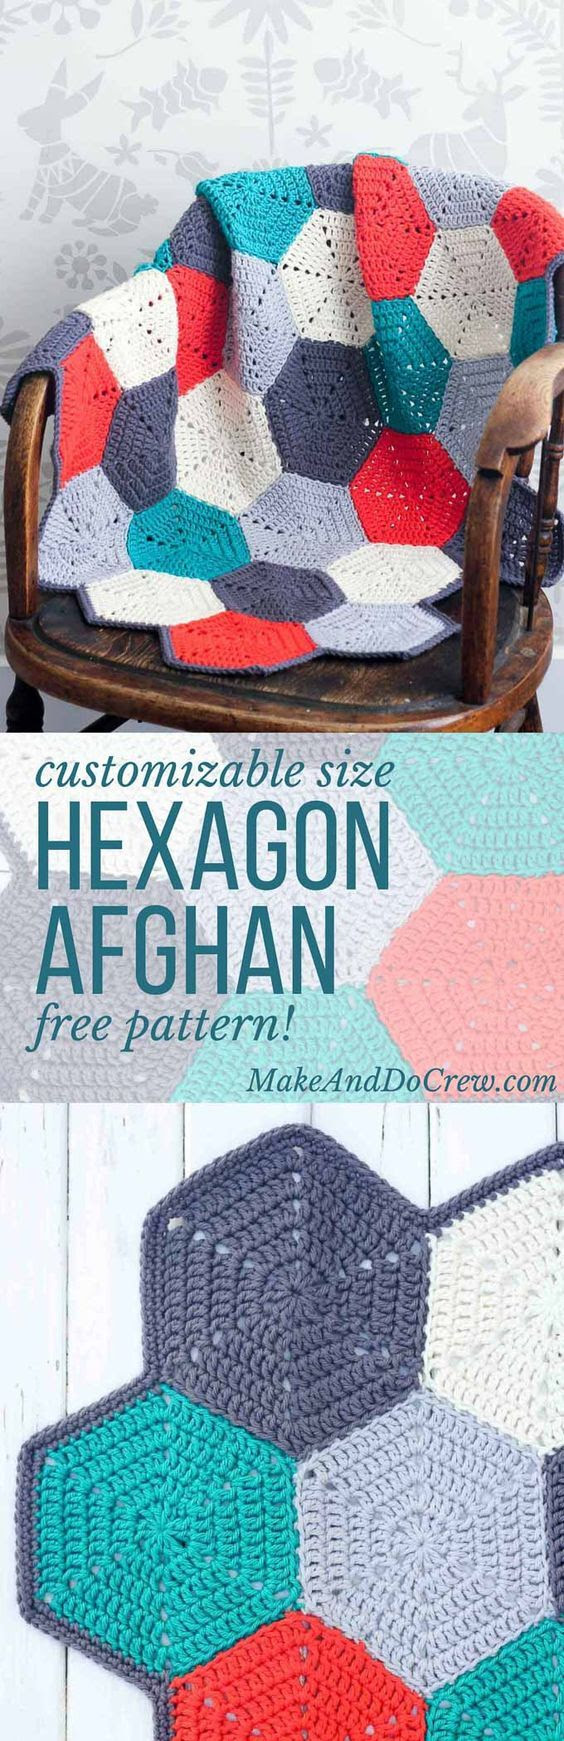 """HAPPY HEXAGONS"" FREE CROCHET AFGHAN PATTERN I really love this hexie blanket pattern. So good! Jess from Make Do & Crew shares a fab pattern via the link."